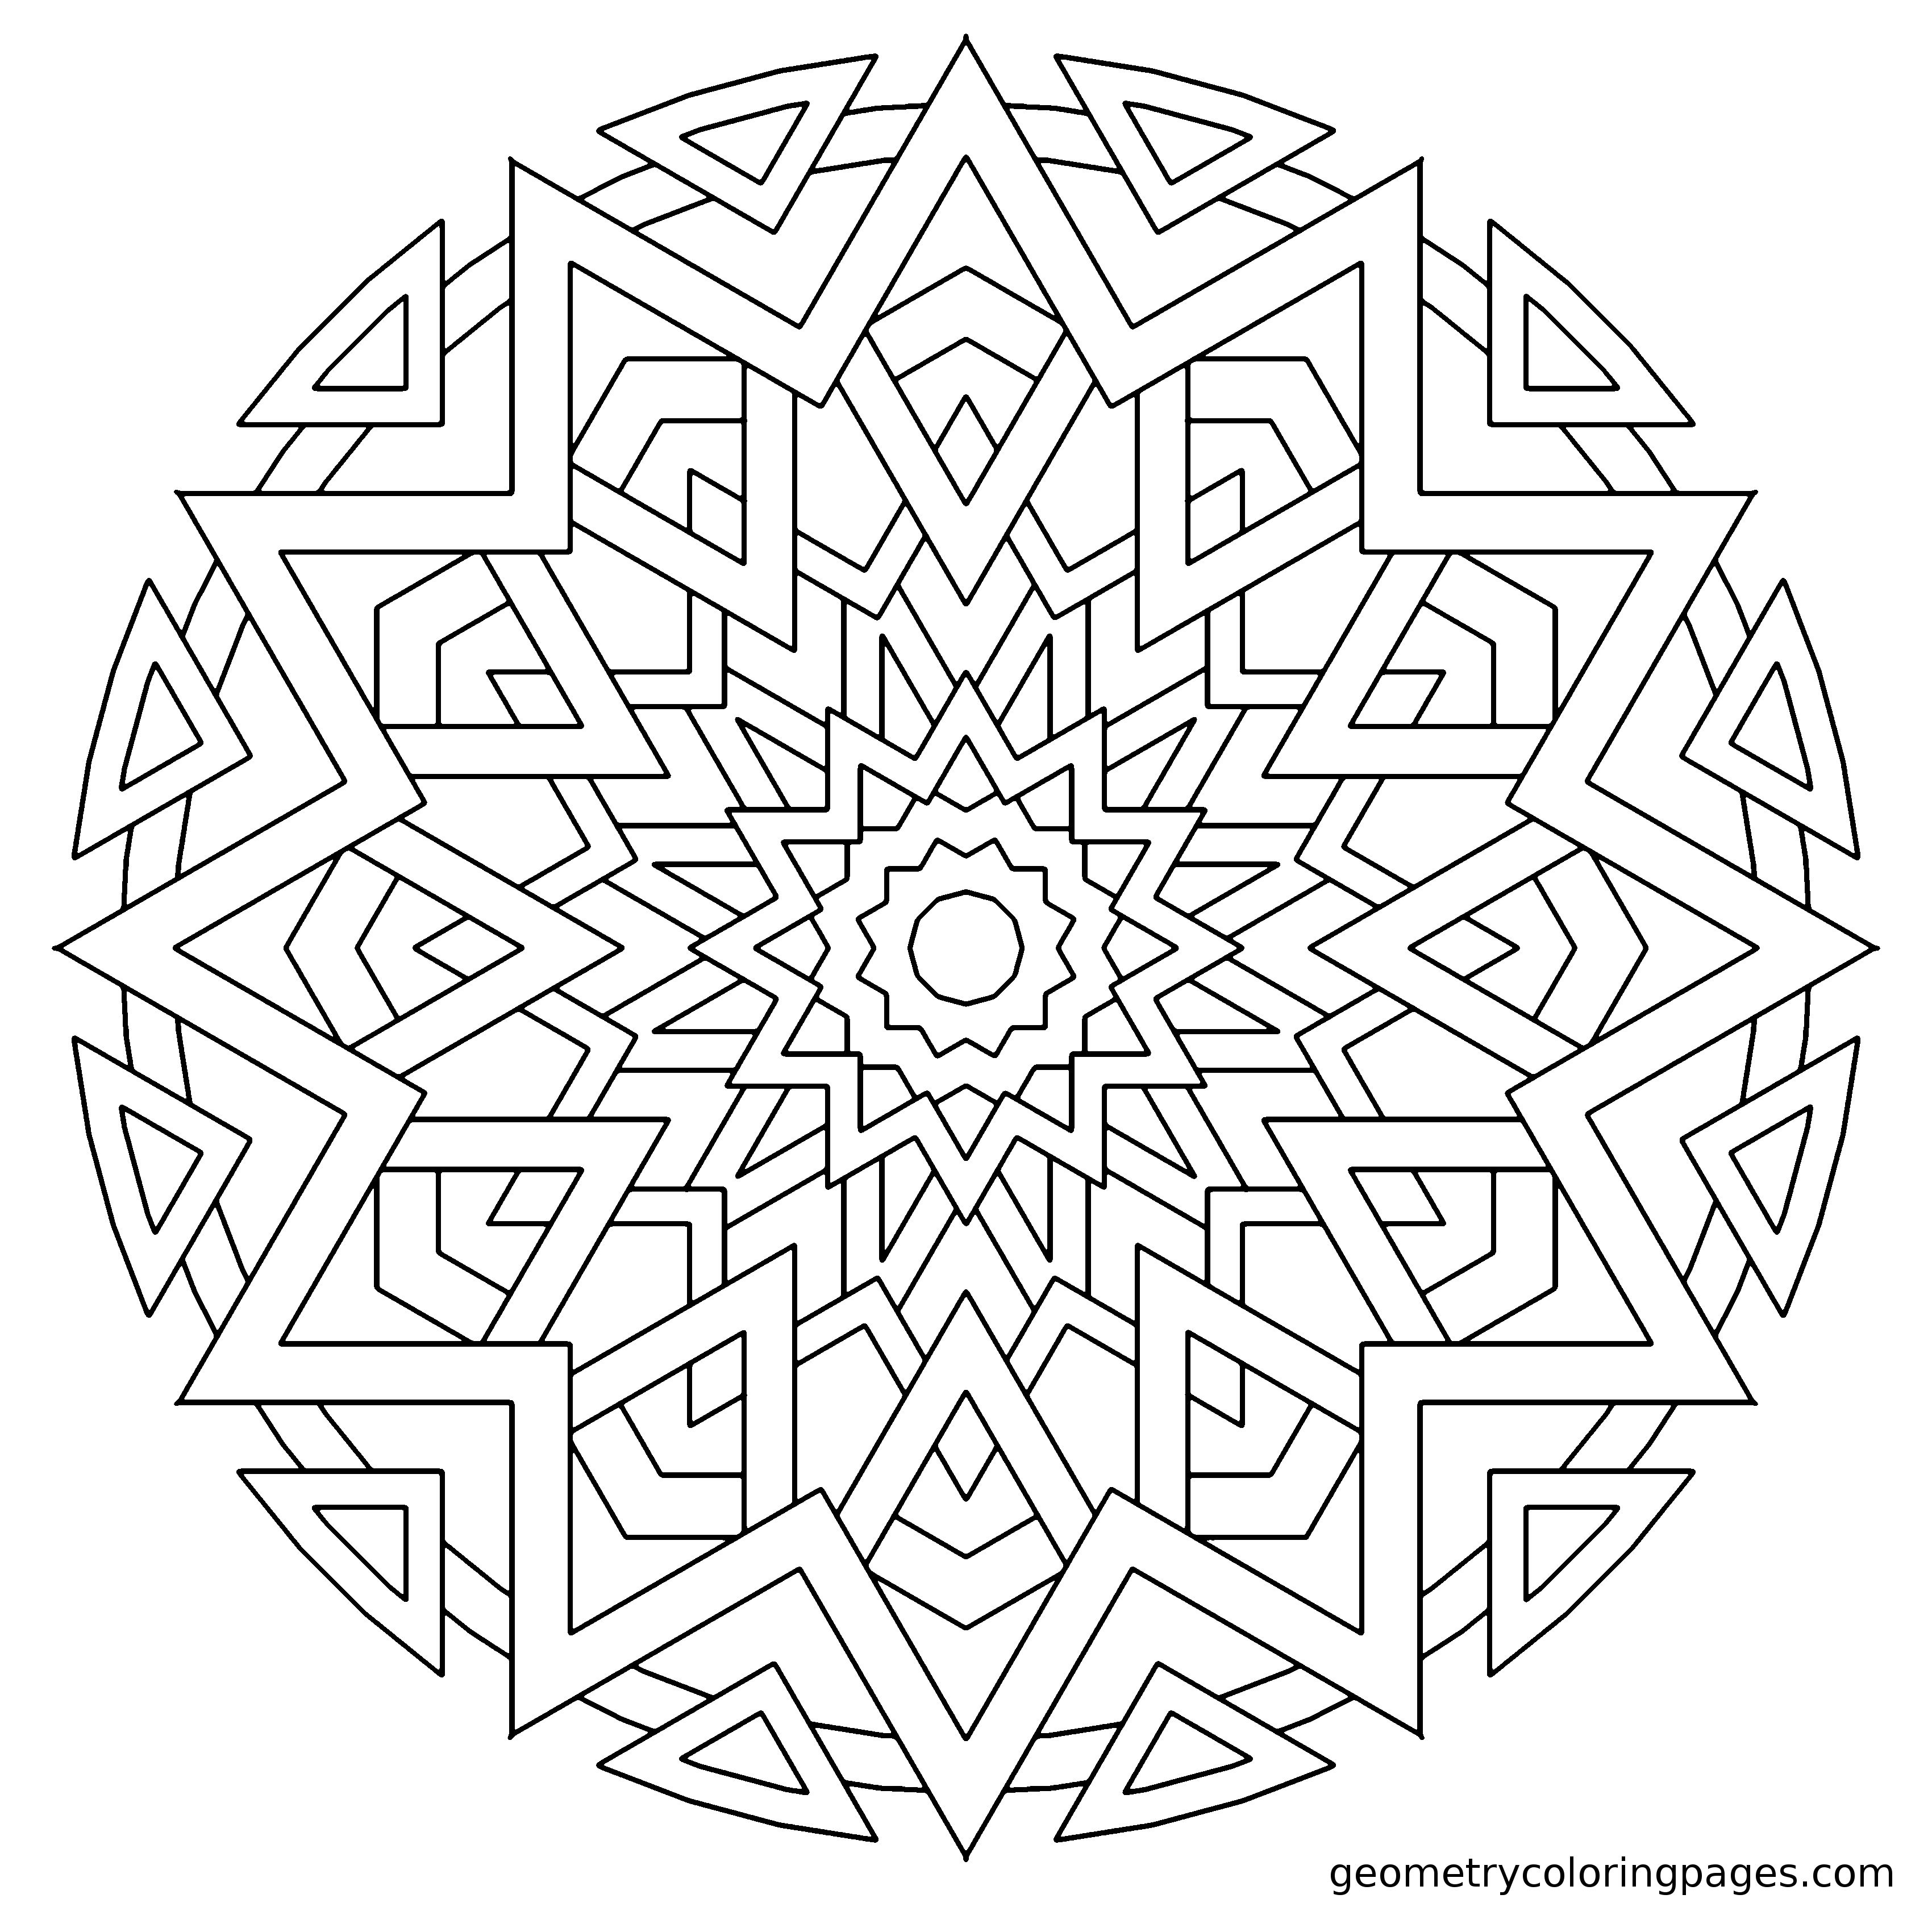 Fiesta geometrycoloringpages adult coloring pages for Fiesta coloring pages